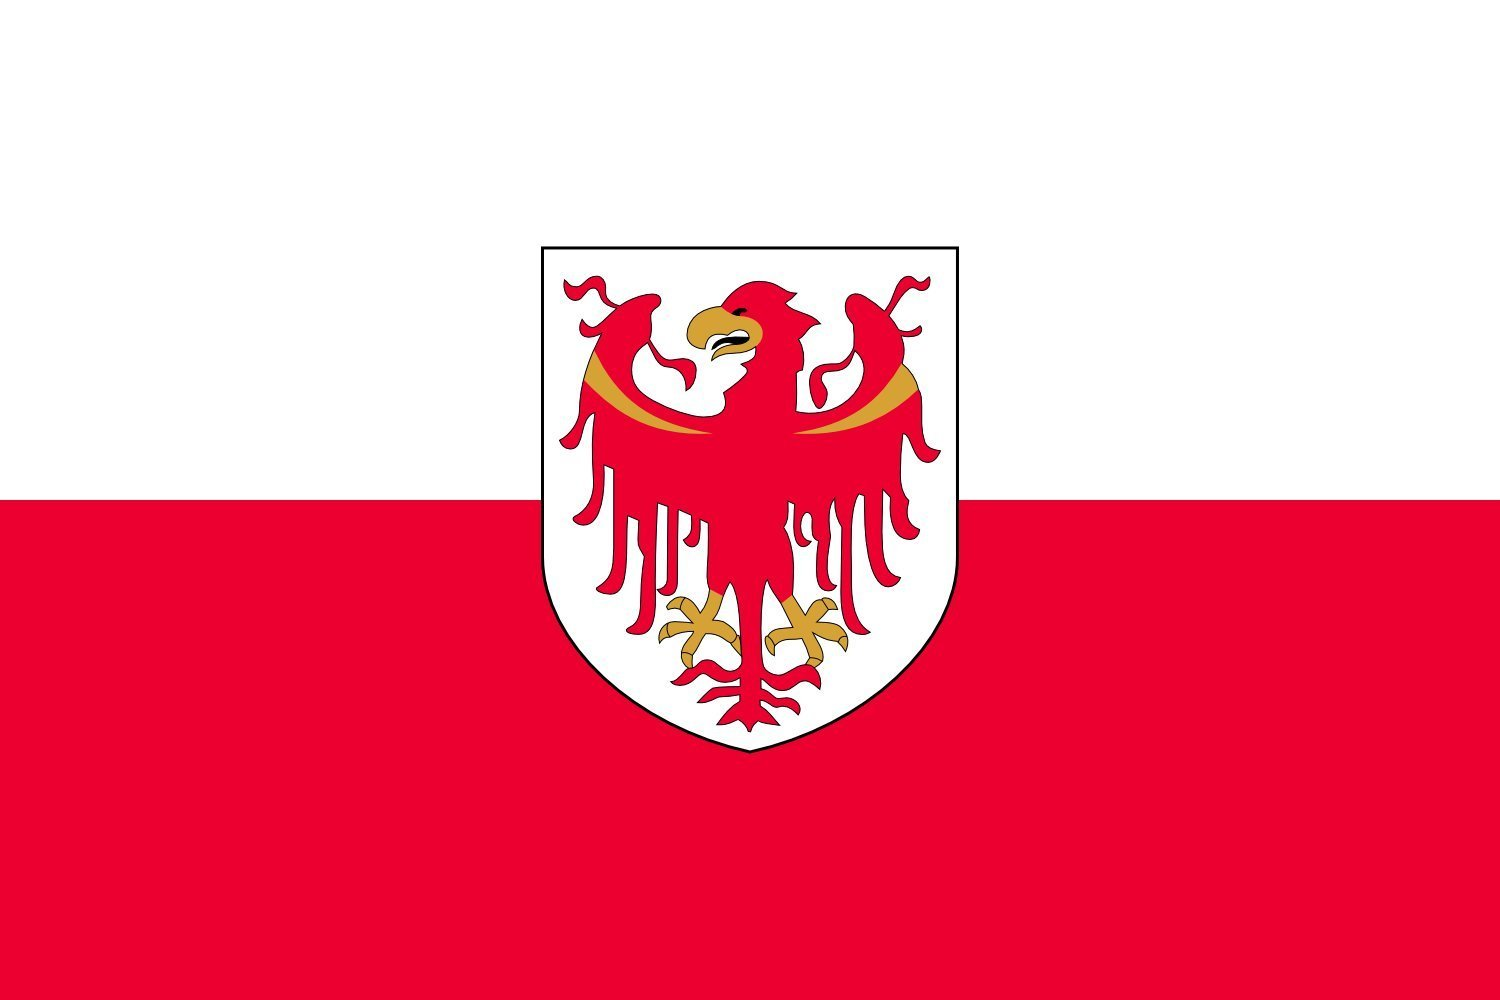 magFlags Large Flag Autonomous Province of Bolzano - Upper Adige/South Tyrol | landscape flag | 1.35m² | 14.5sqft | 90x150cm | 3x5ft - 100% Made in Germany - long lasting outdoor flag